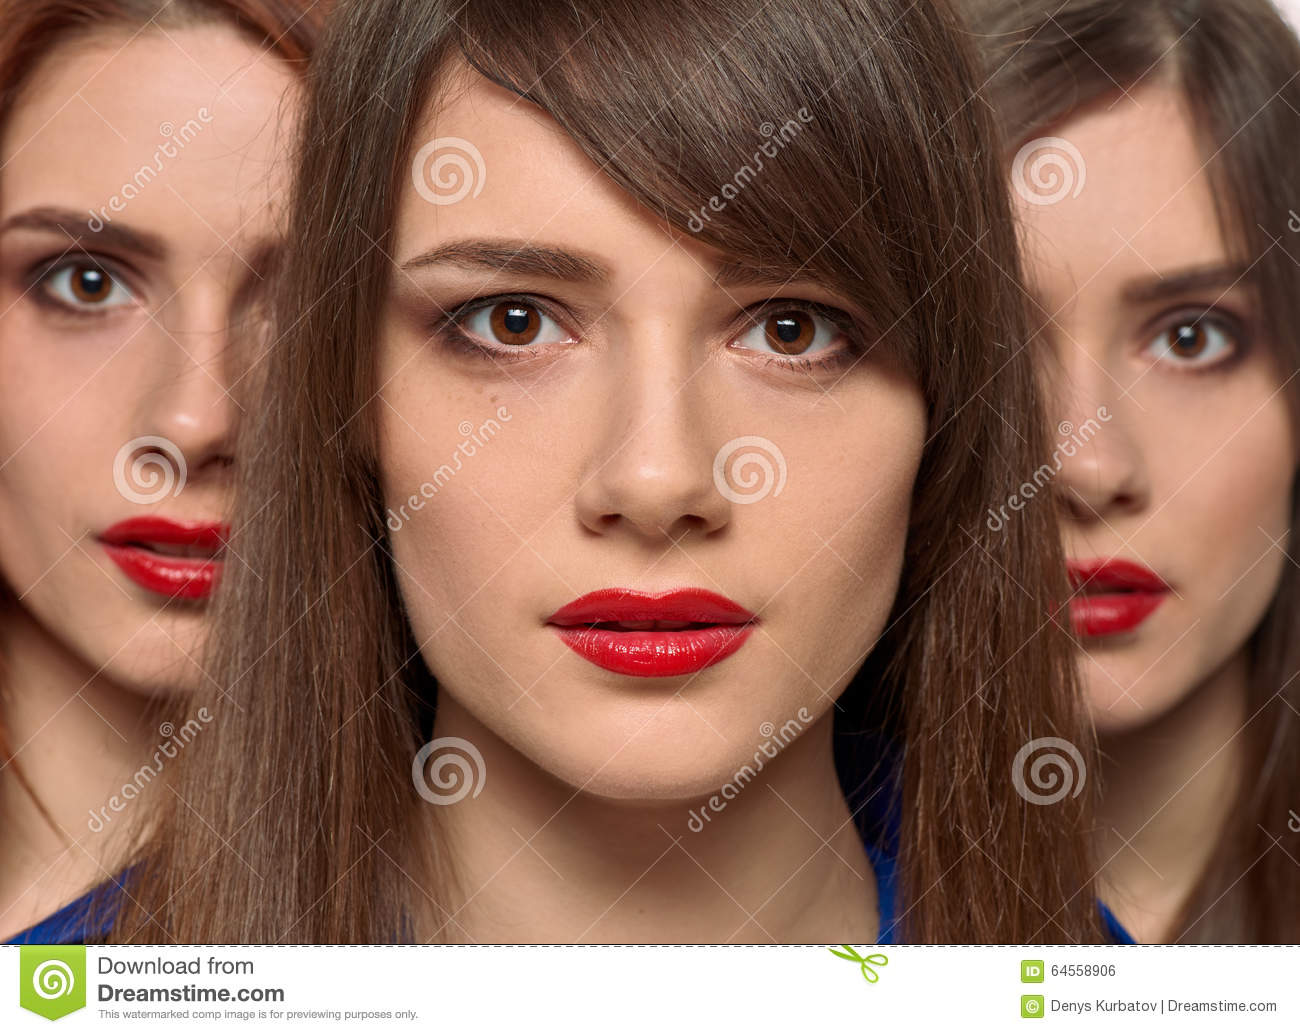 three pretty women faces. triplets sisters stock photo - image of